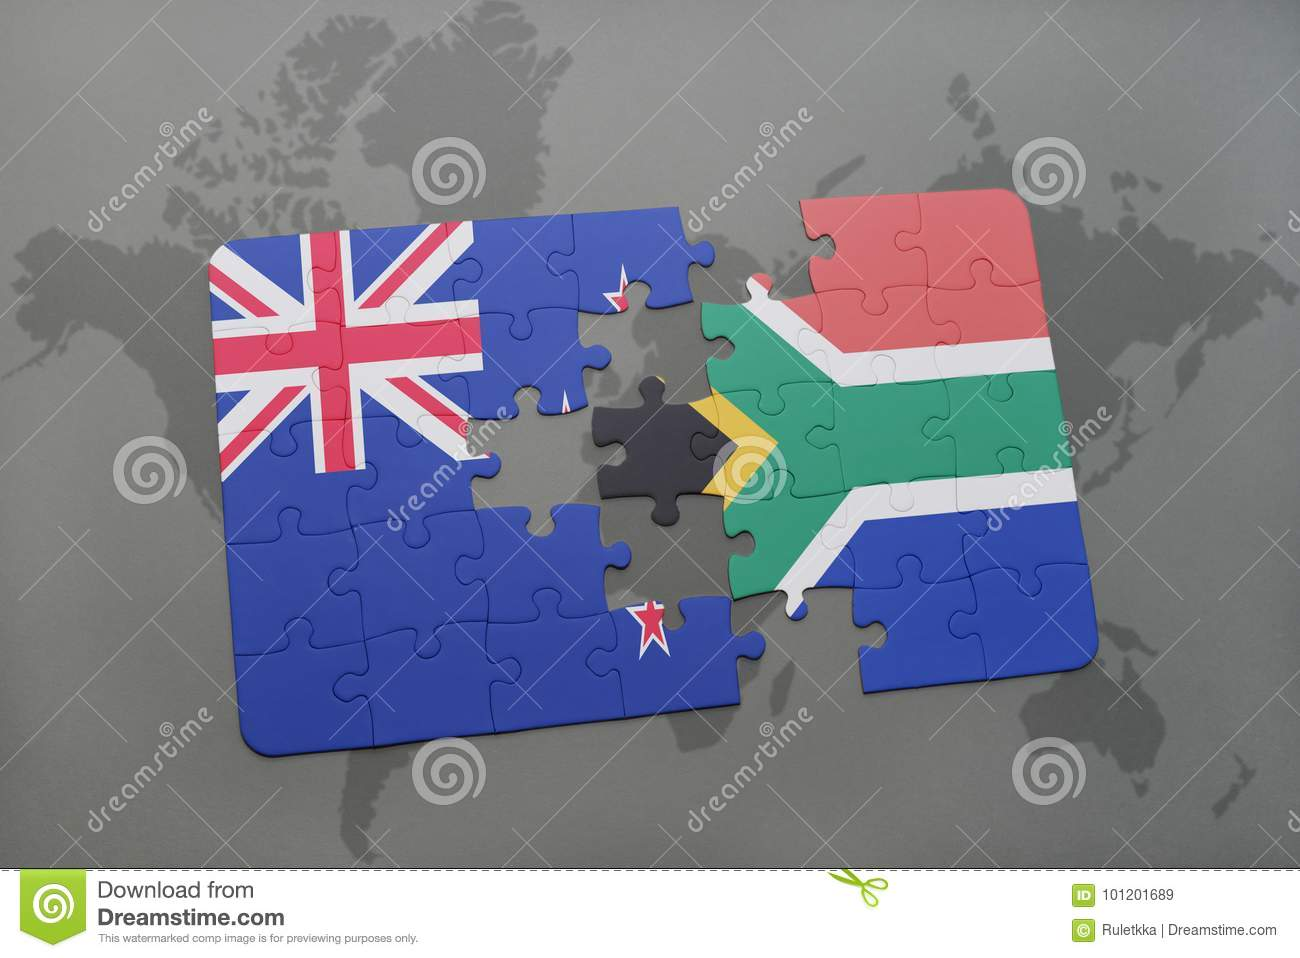 Puzzle With The National Flag Of New Zealand And South Africa On A on giant lobelia africa, asia africa, conflicts in africa, cities in africa, lake victoria africa, angola africa, countries africa, atrocities against women in africa, world landmarks africa, globe africa, nigeria africa, earth africa, south america africa, orange river africa, animals in africa, world atlas, wrangler africa, algeria natural resources in africa, religious diversity in africa,